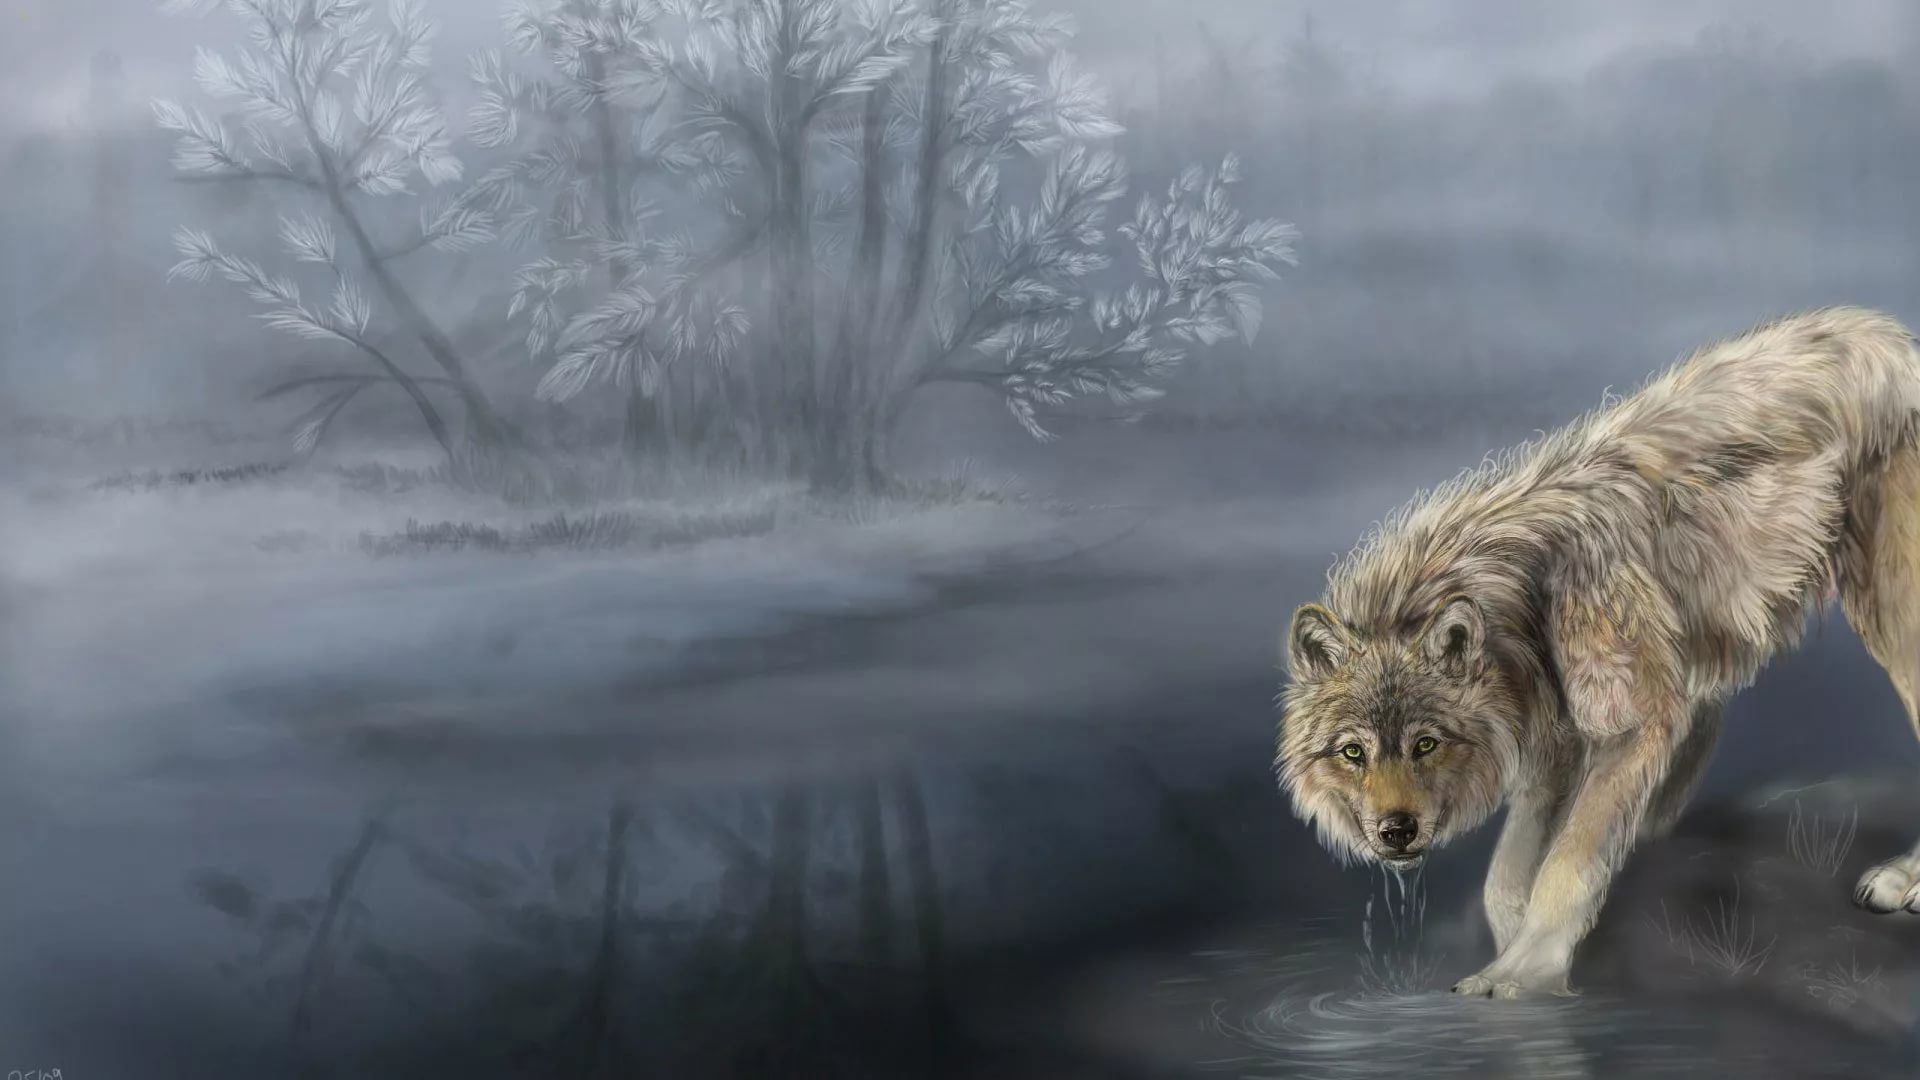 Cool Wolf wallpaper picture hd